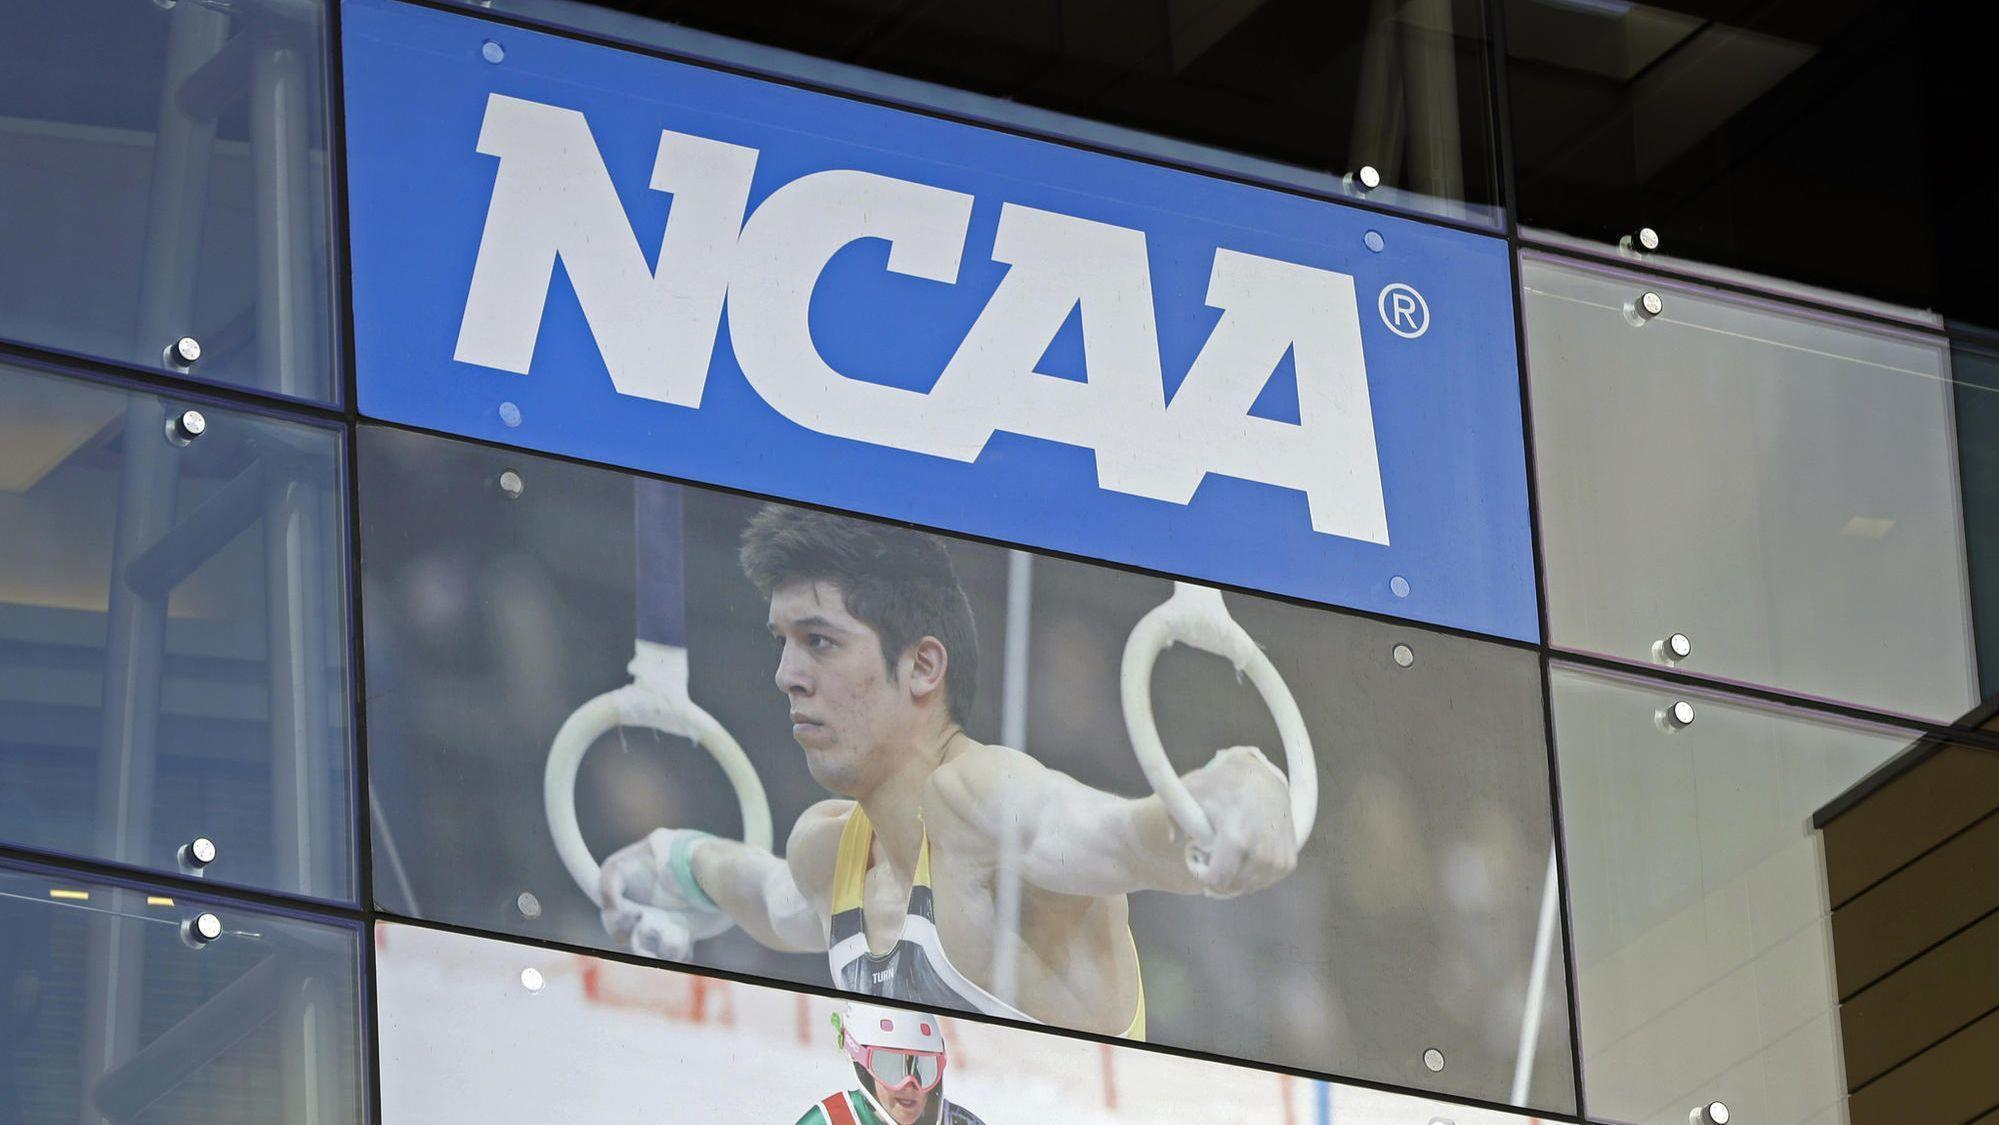 ncaa rules coaches dating athletes